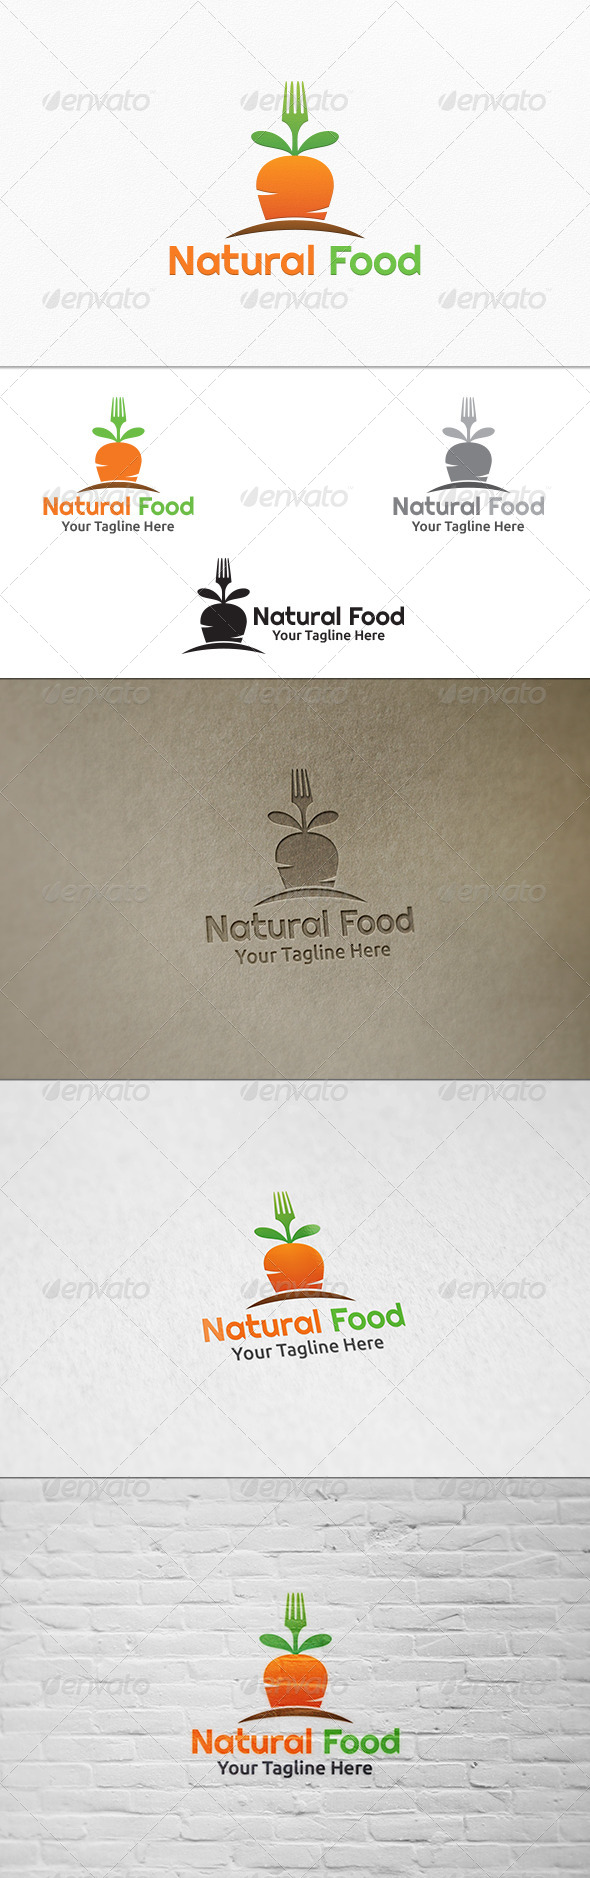 GraphicRiver Natural Food Logo Template 8159132